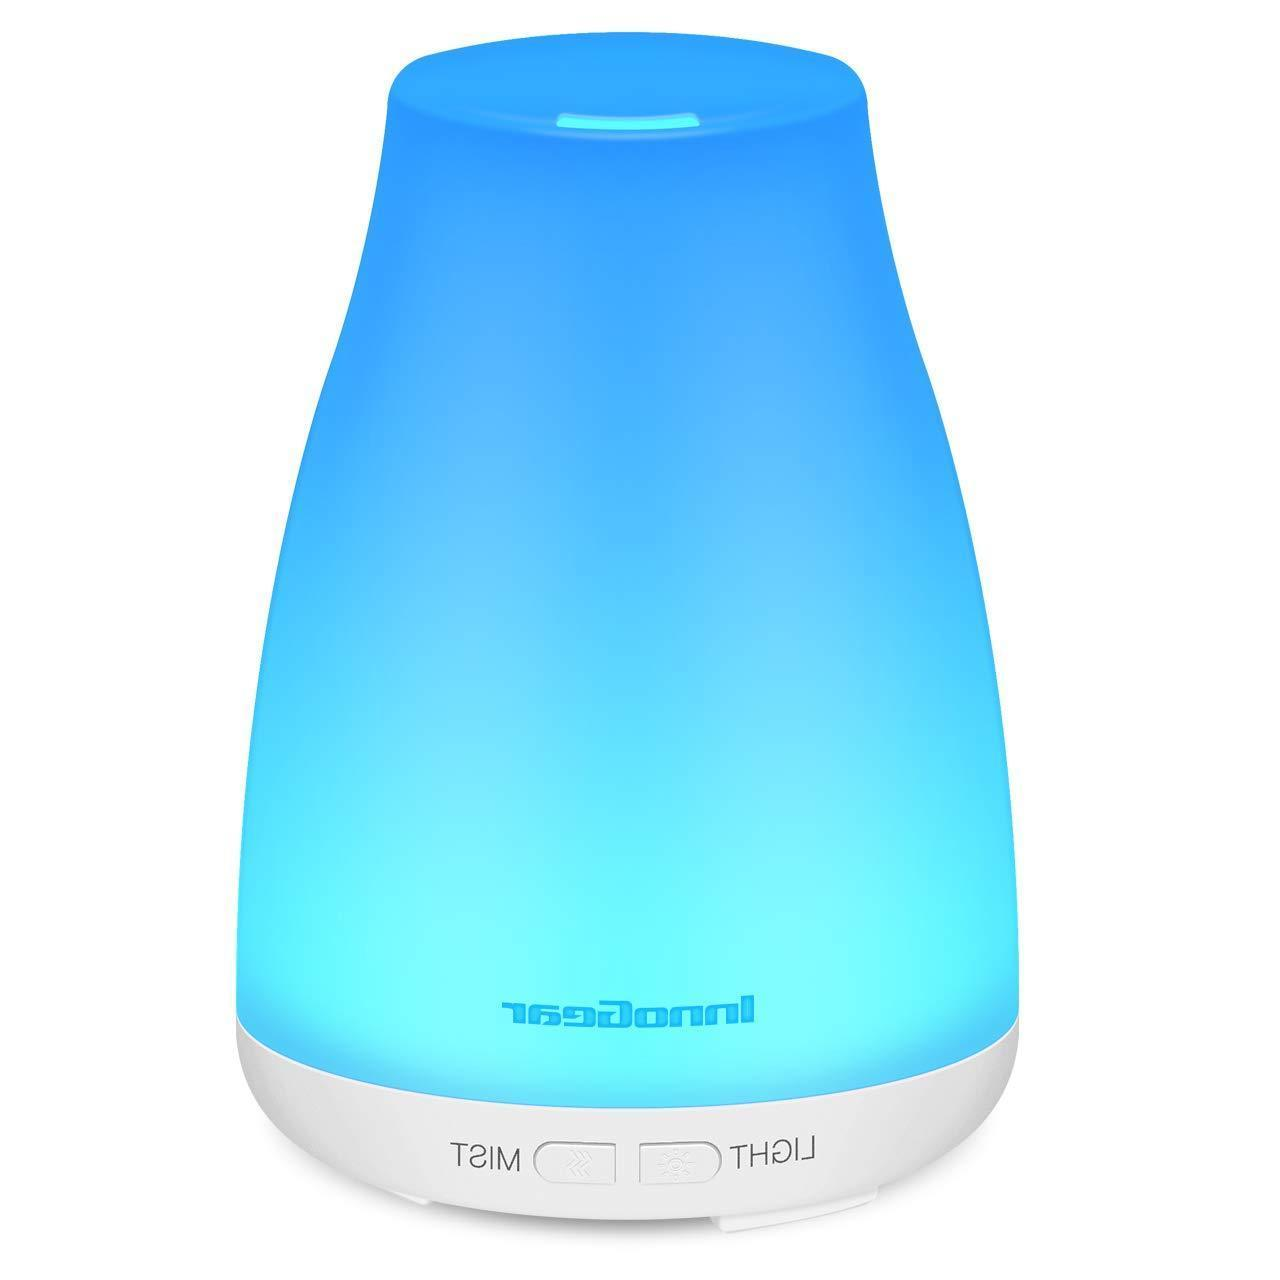 2nd version aromatherapy essential oil diffuser